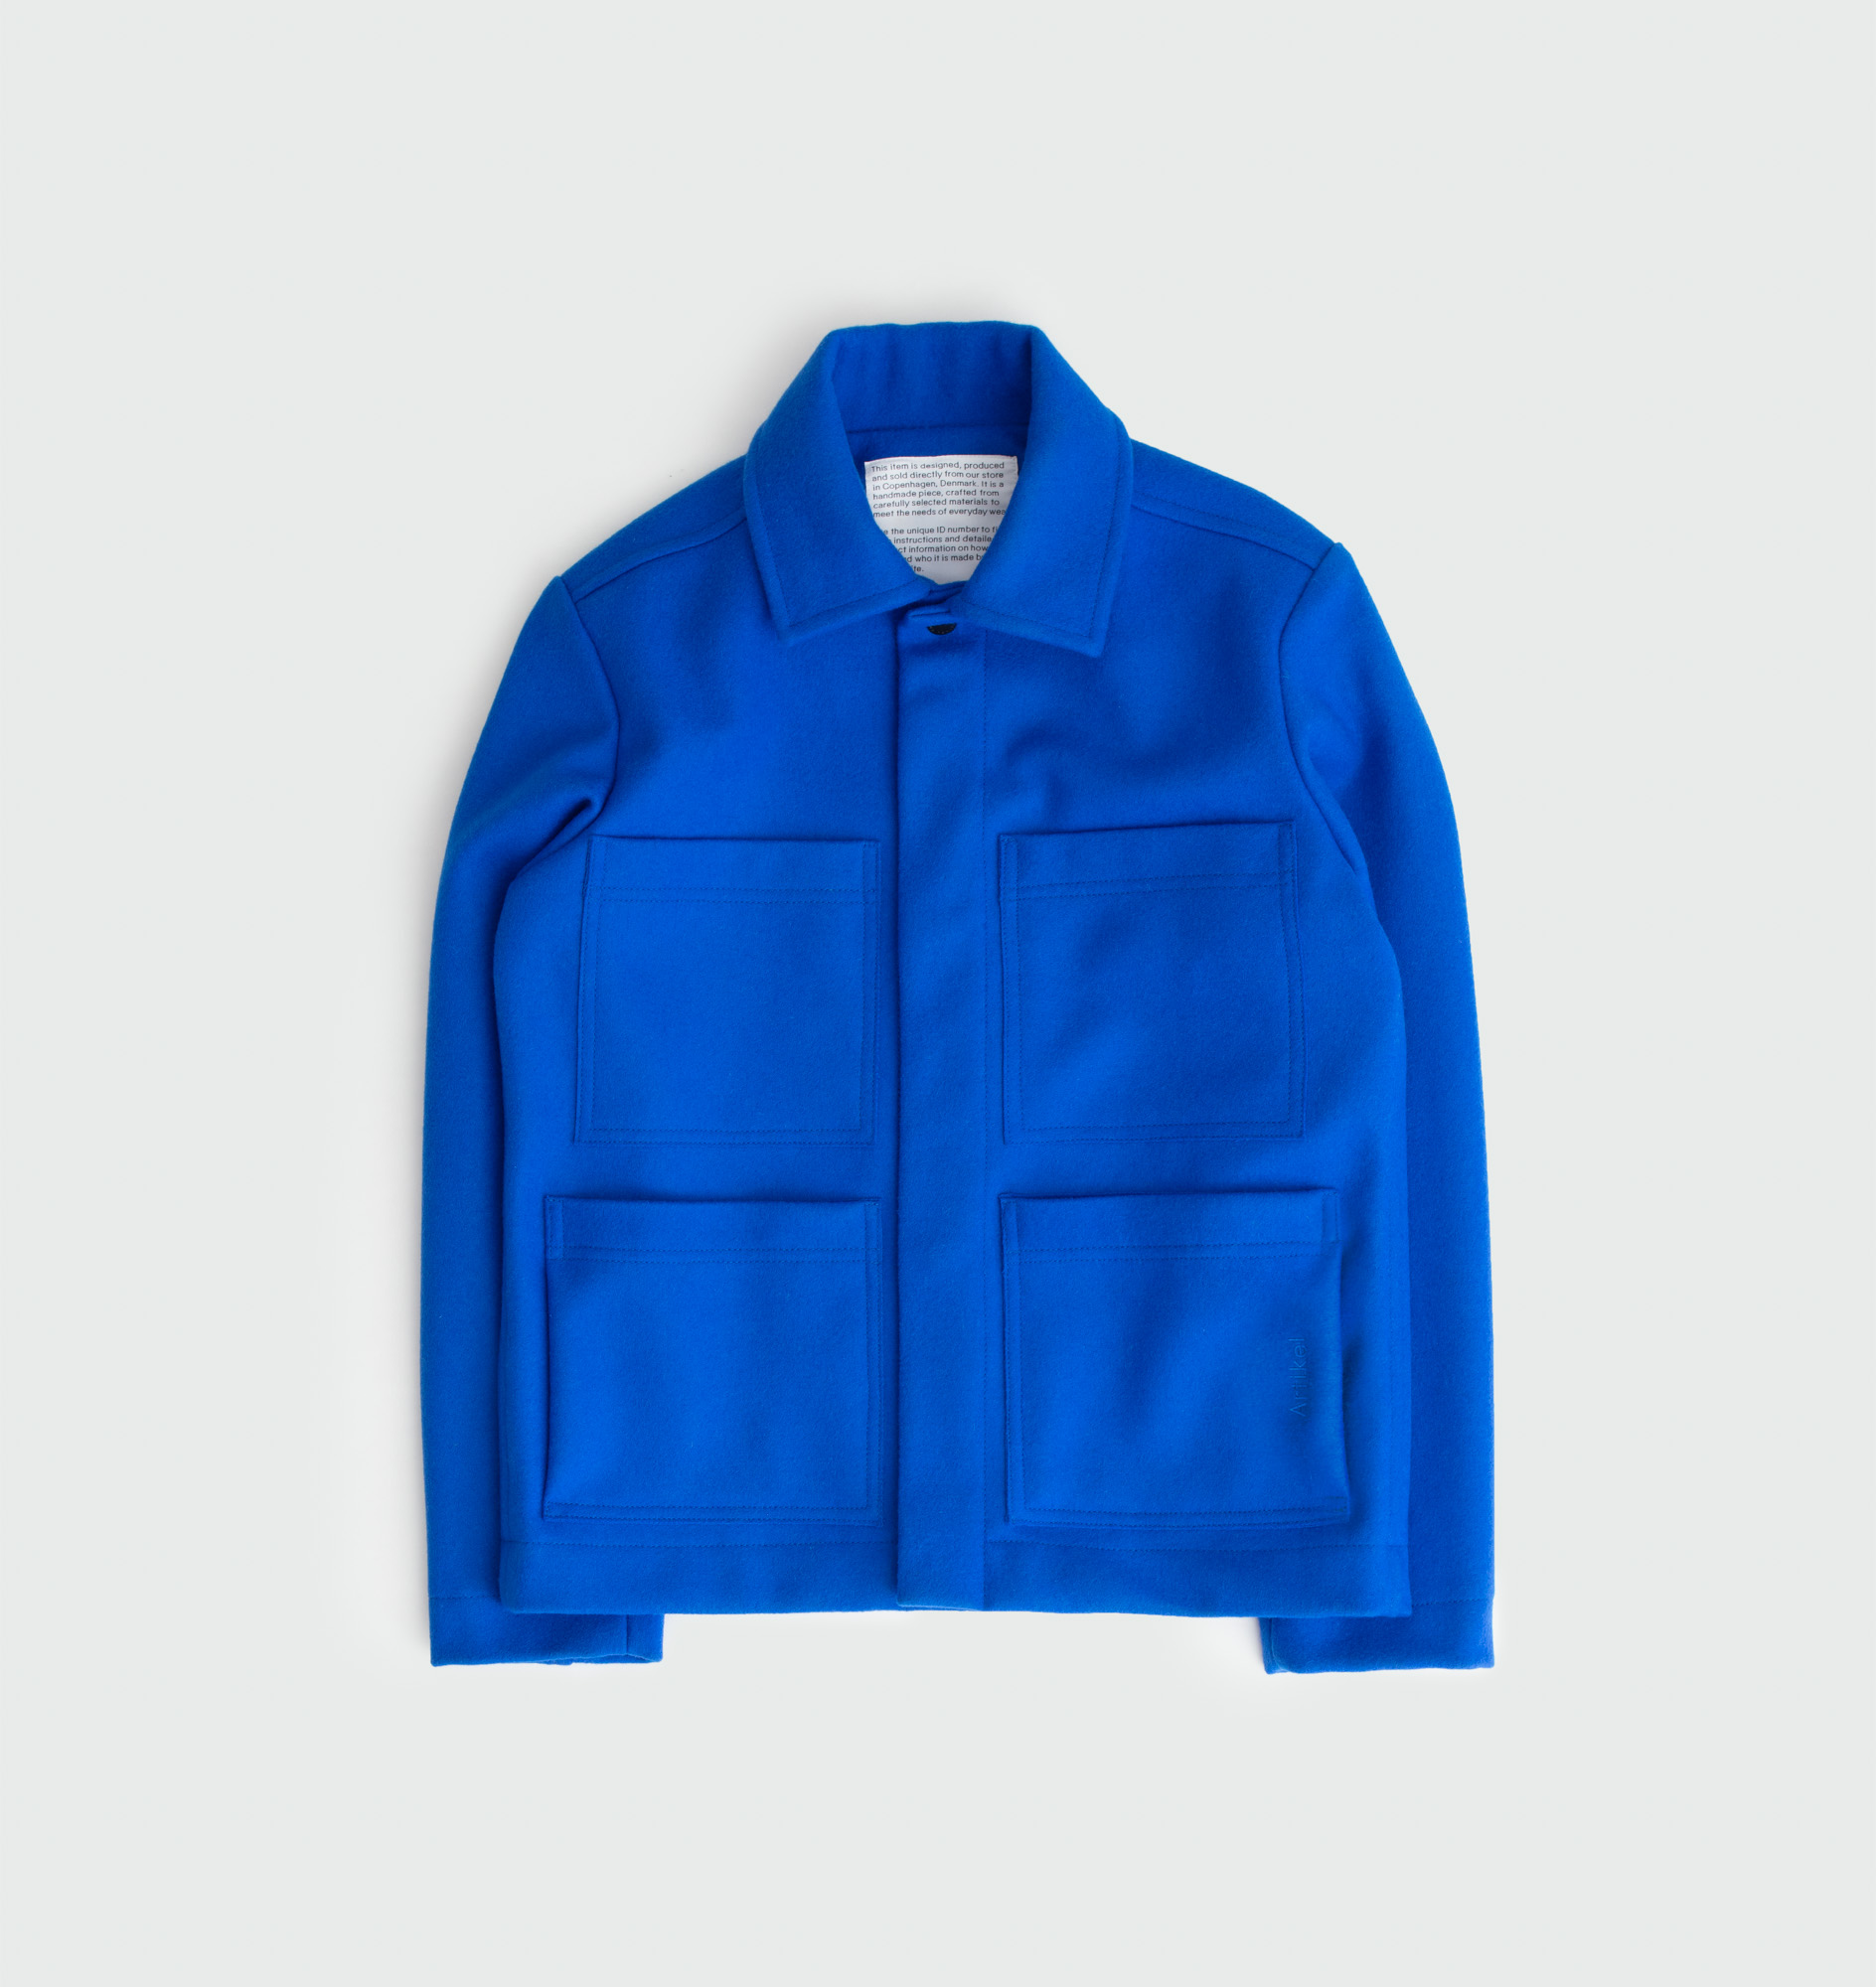 Blue wool jacket with Italian buttons by Artikel København, produced in Copenhagen